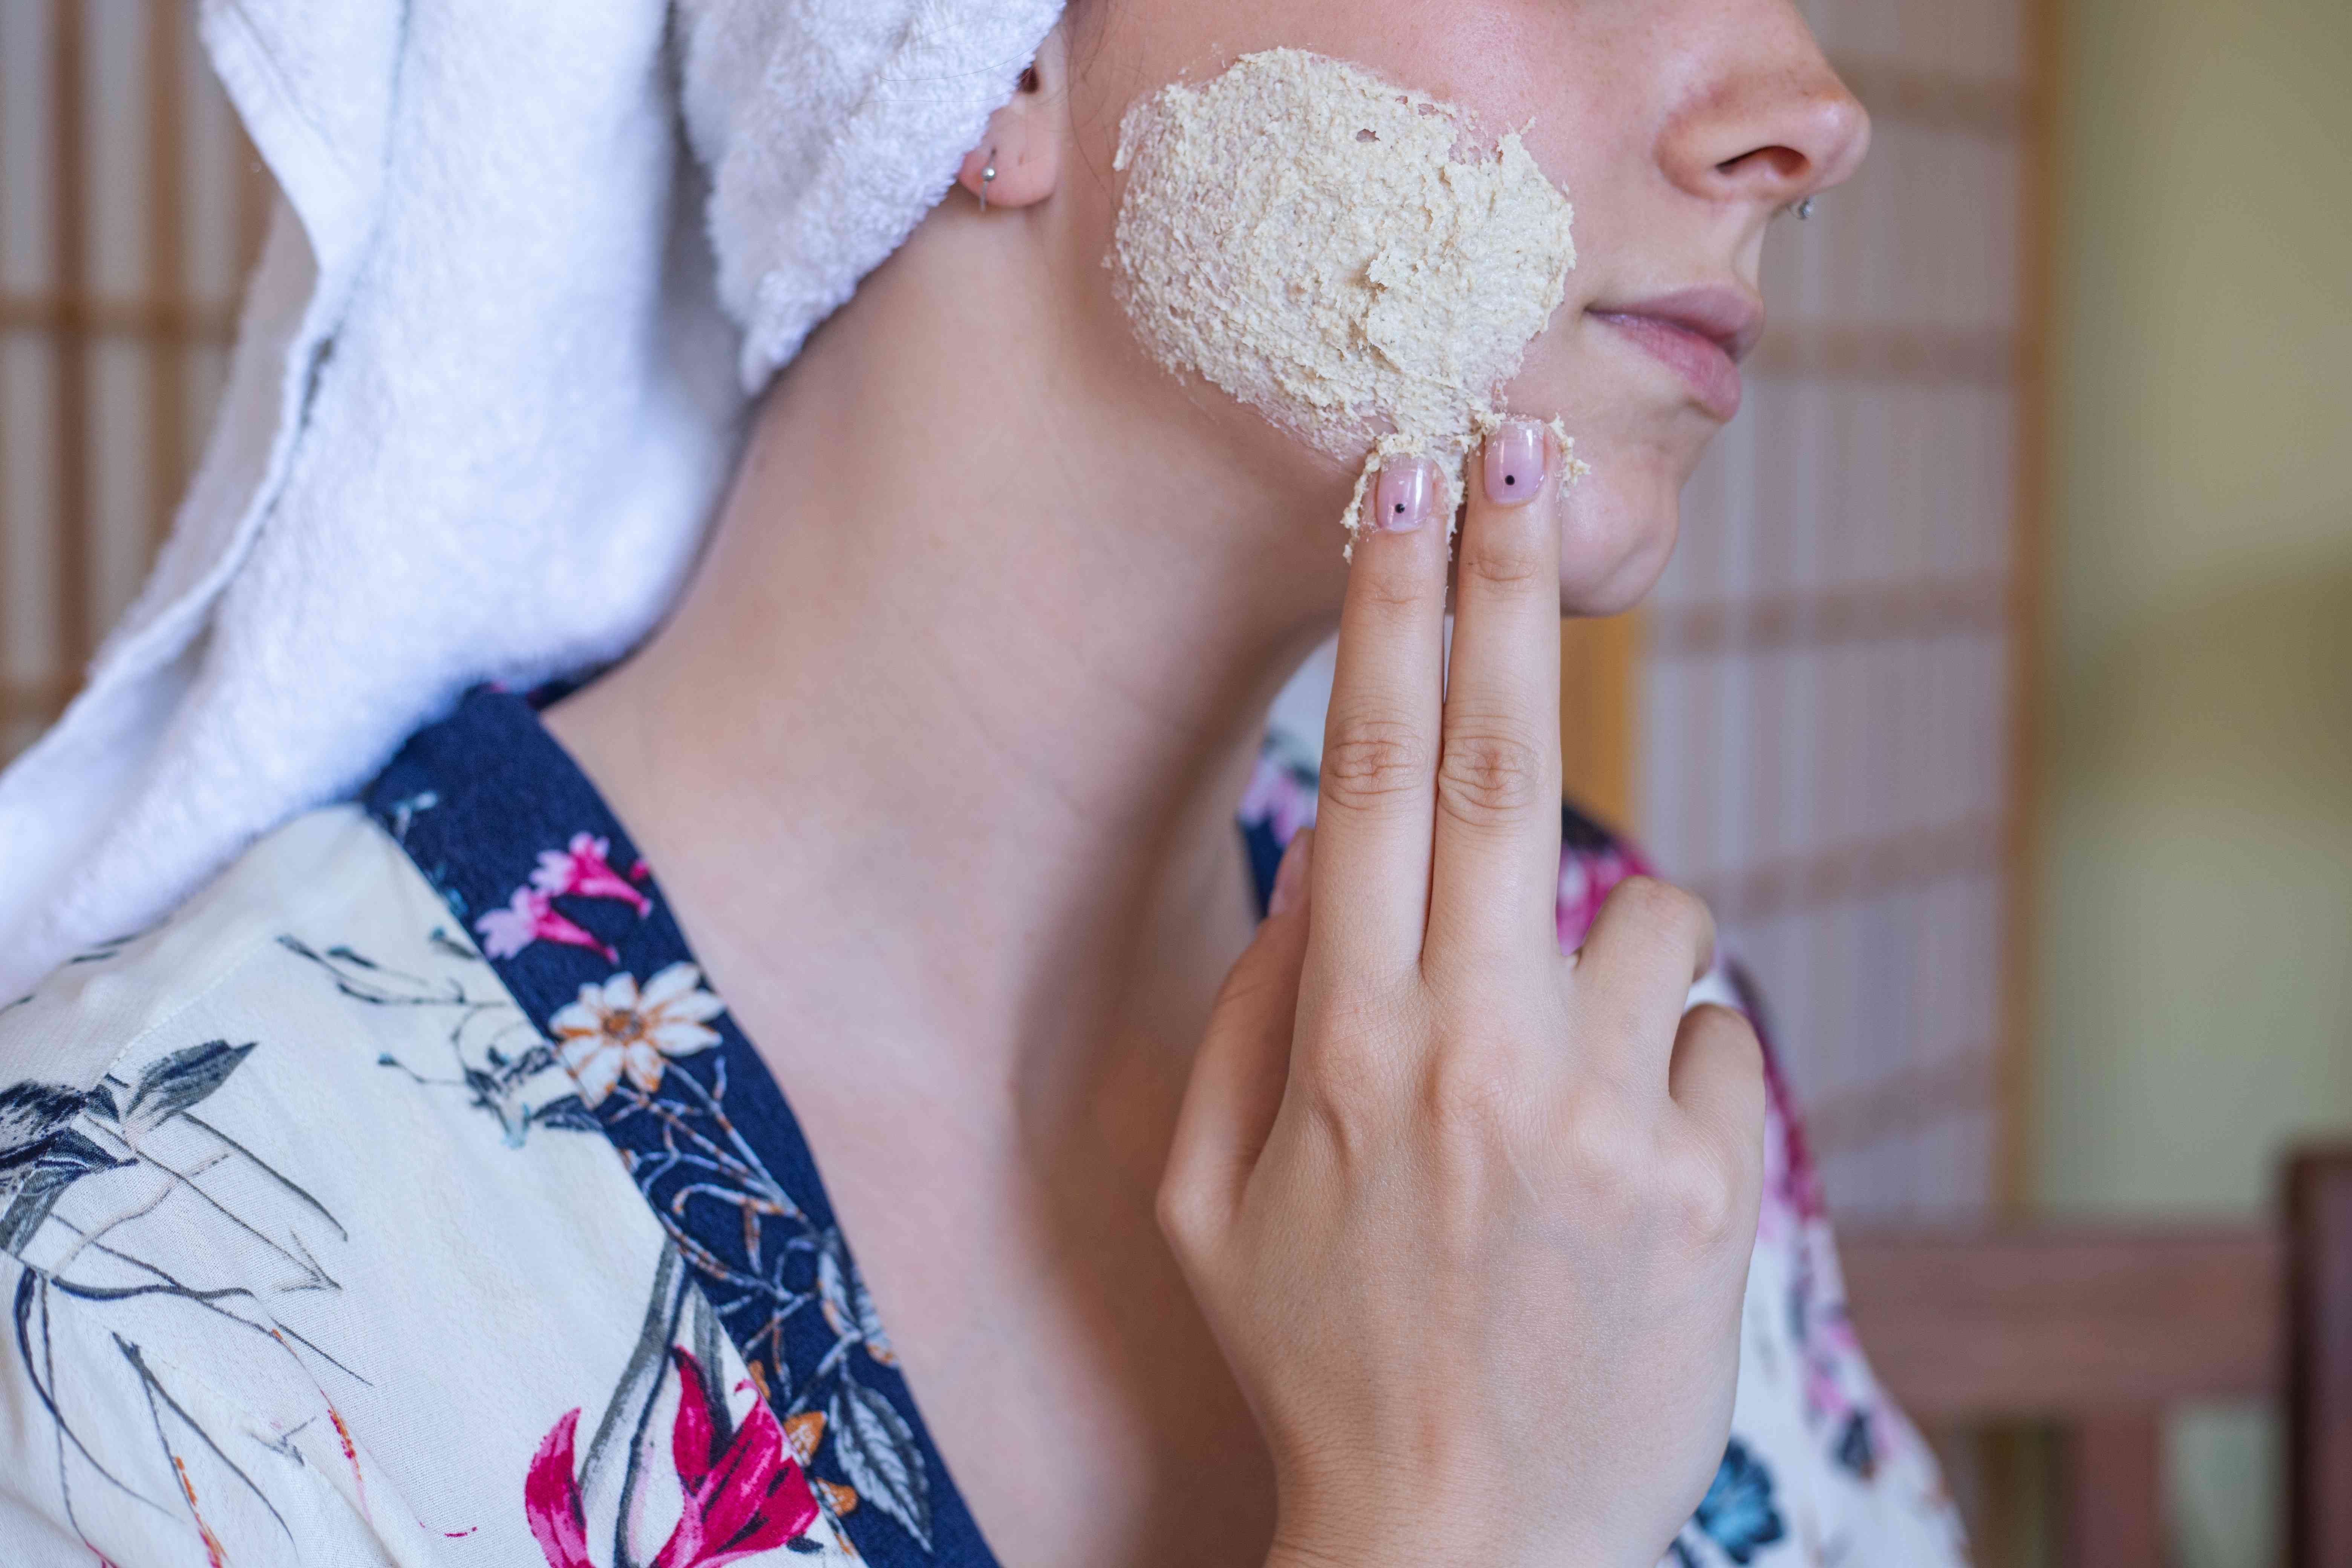 woman in silk robe with head wrap smears colloidal oatmeal paste on face